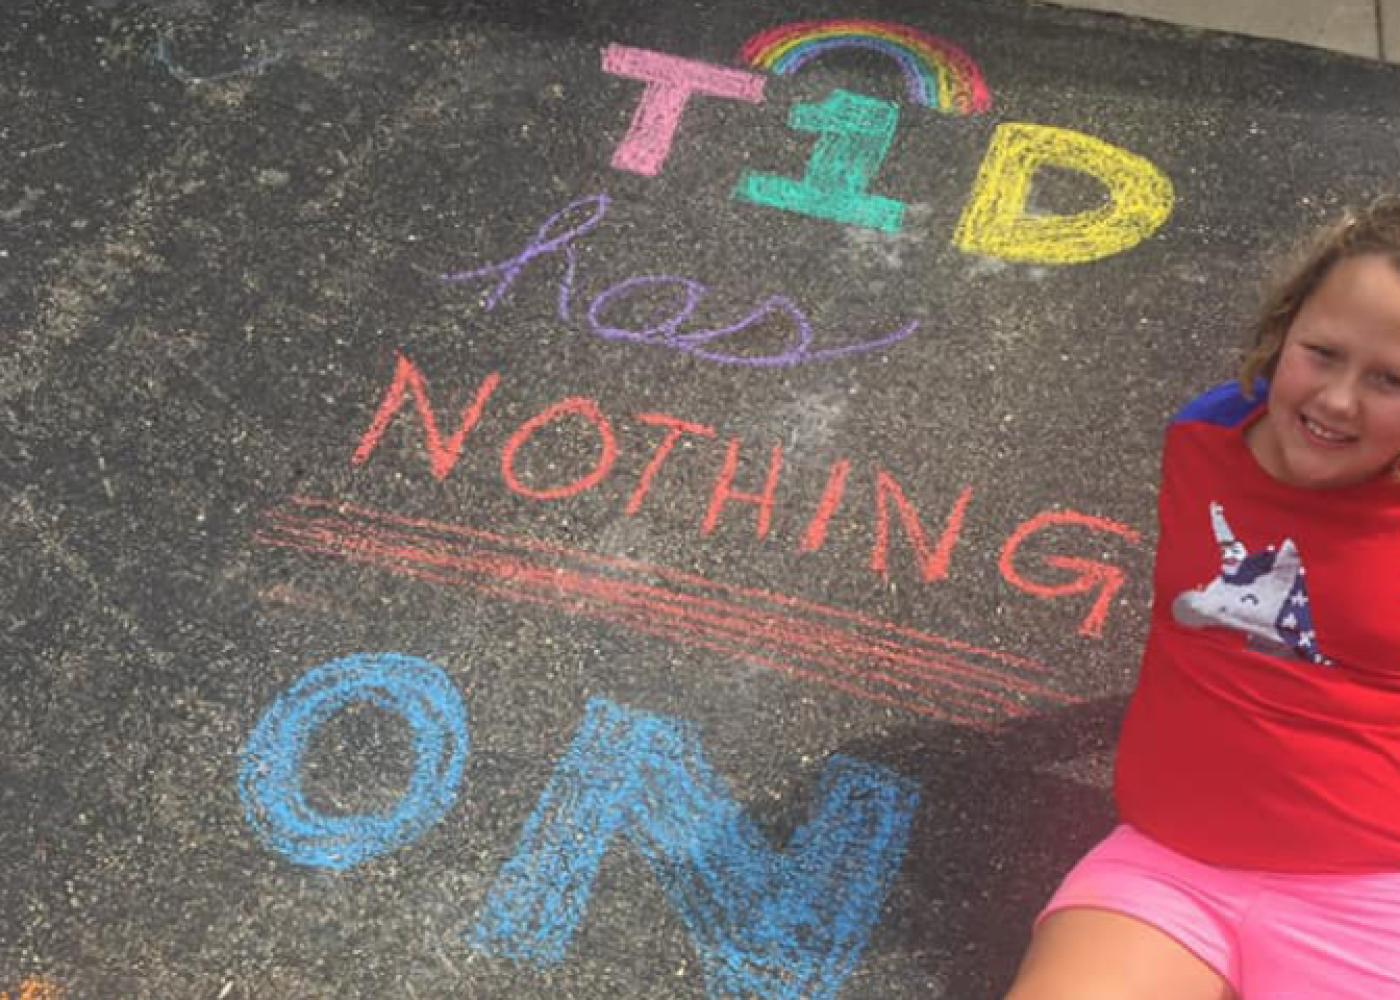 Girl in red shirt on asphalt with colored chalk writing